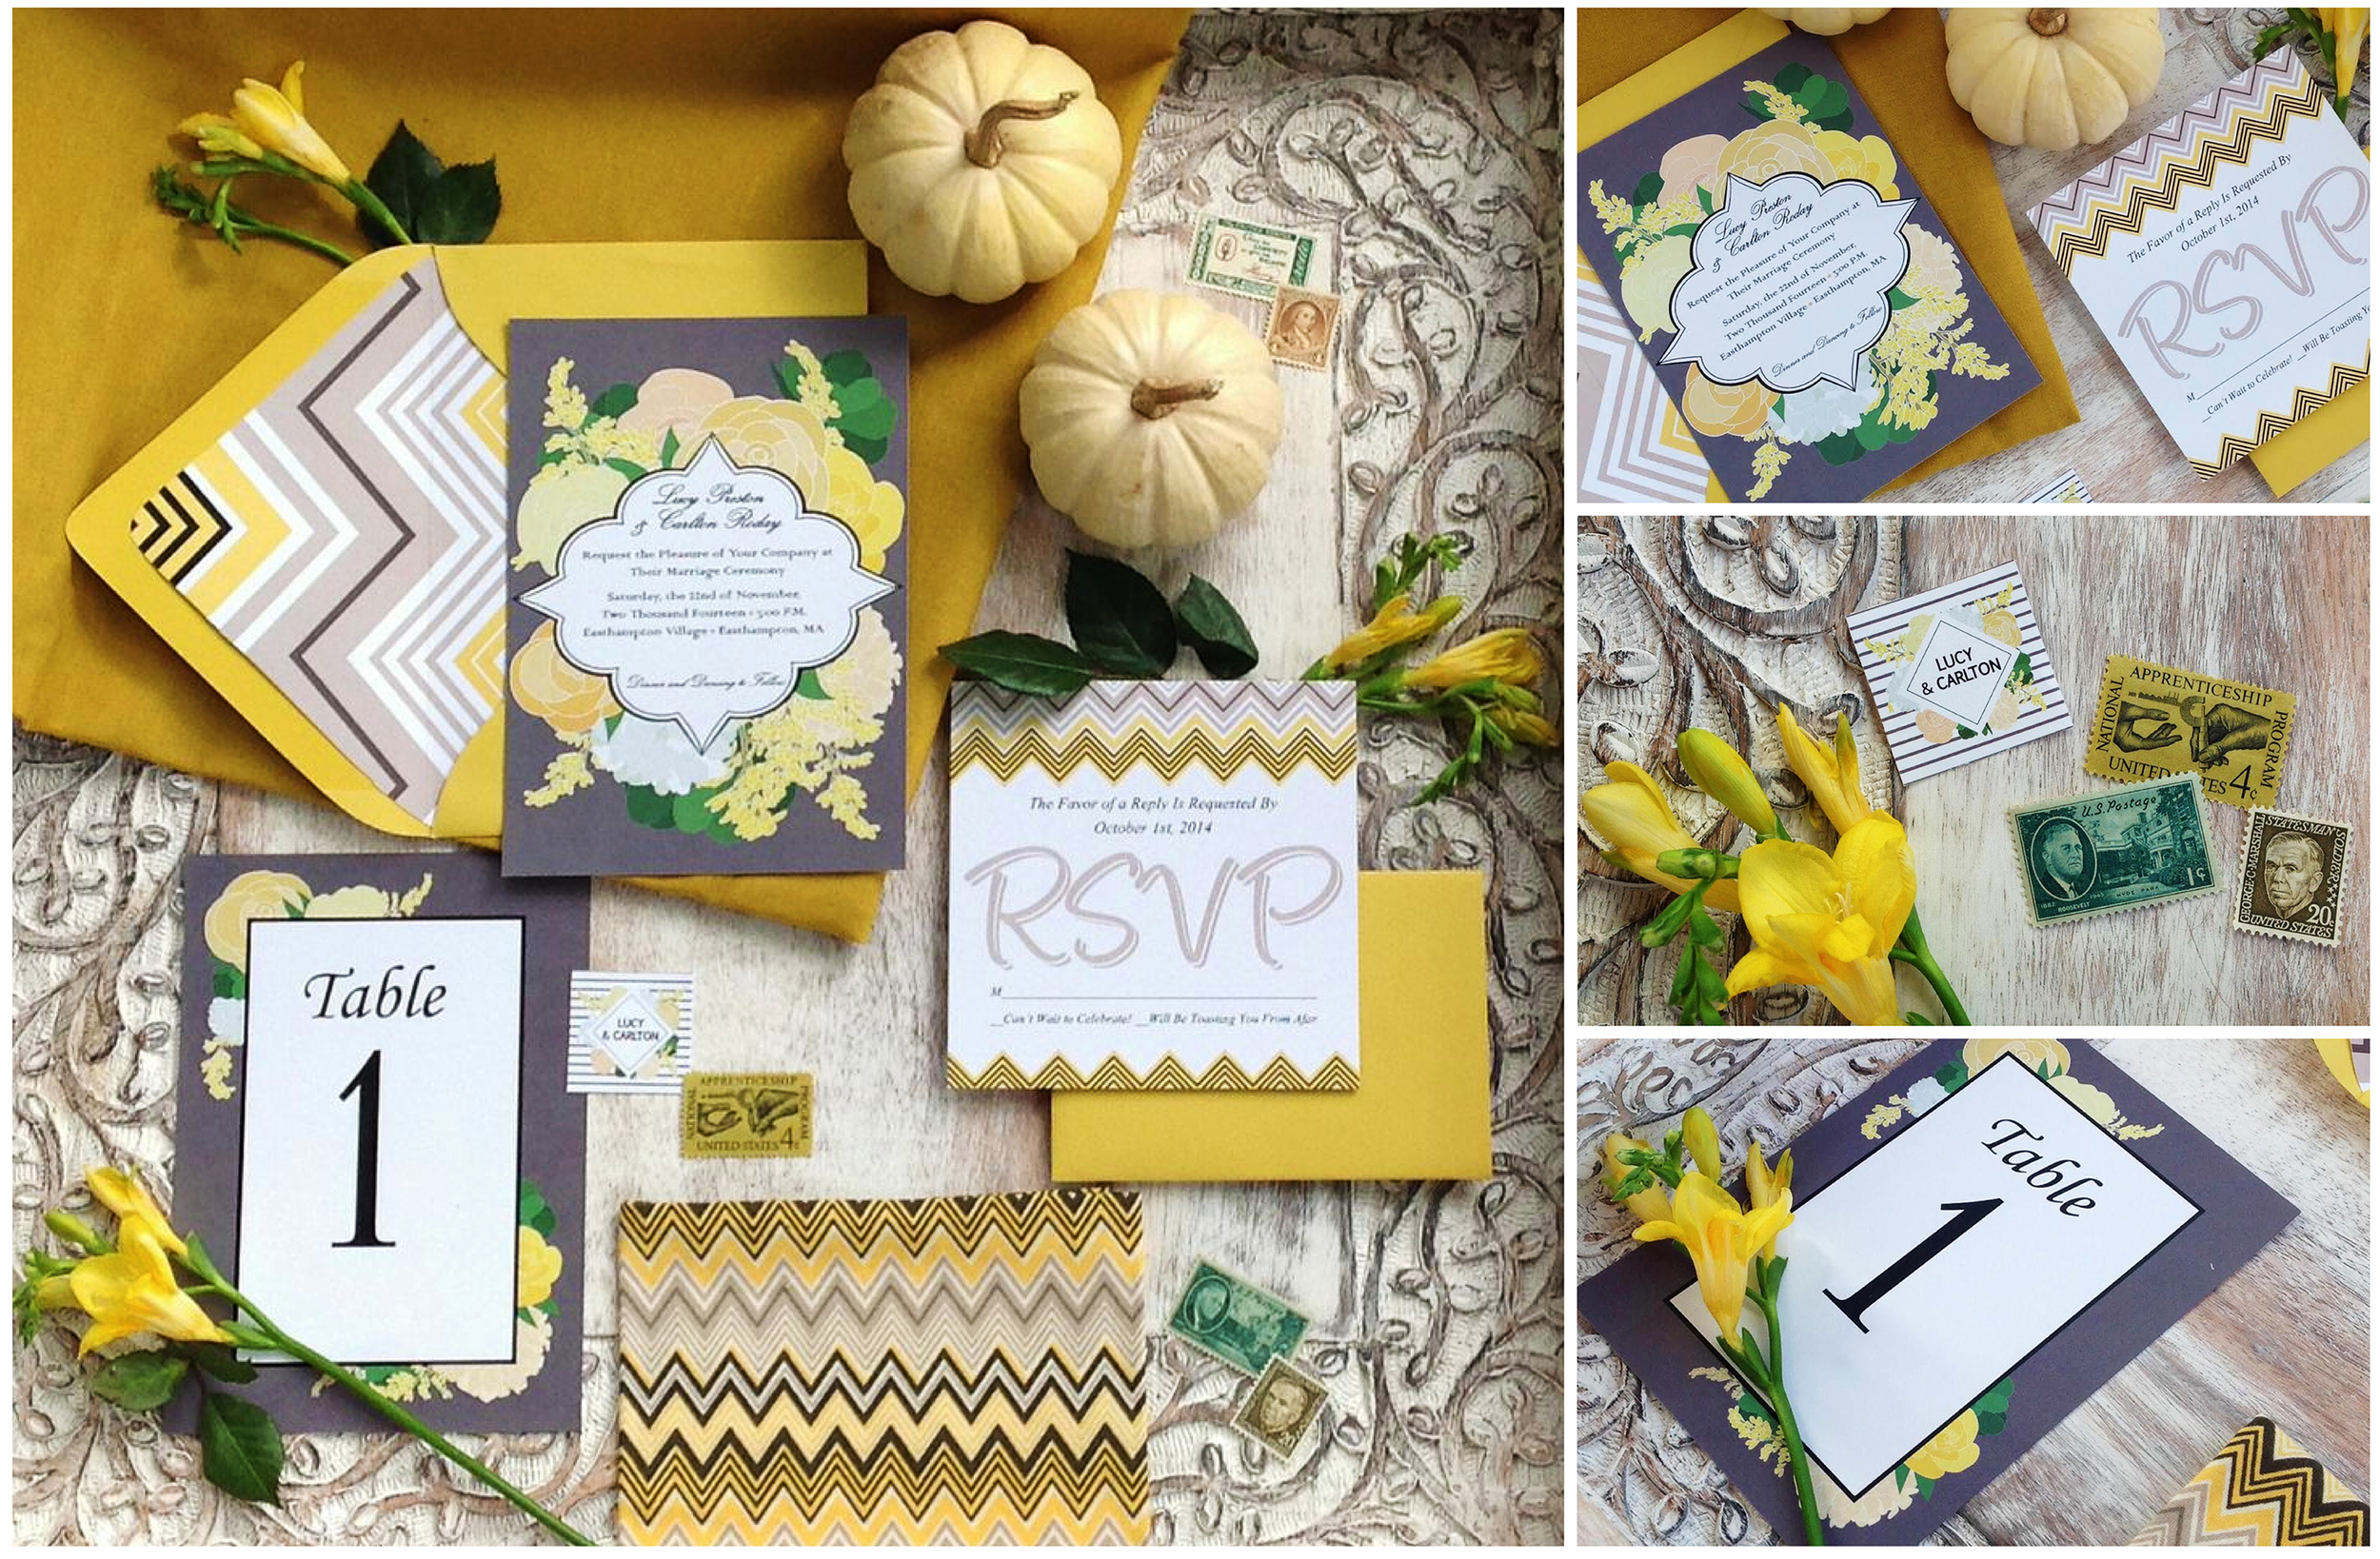 Parsimony Vintage- Event Planning-Mustard Wedding Inspiration invites.jpg